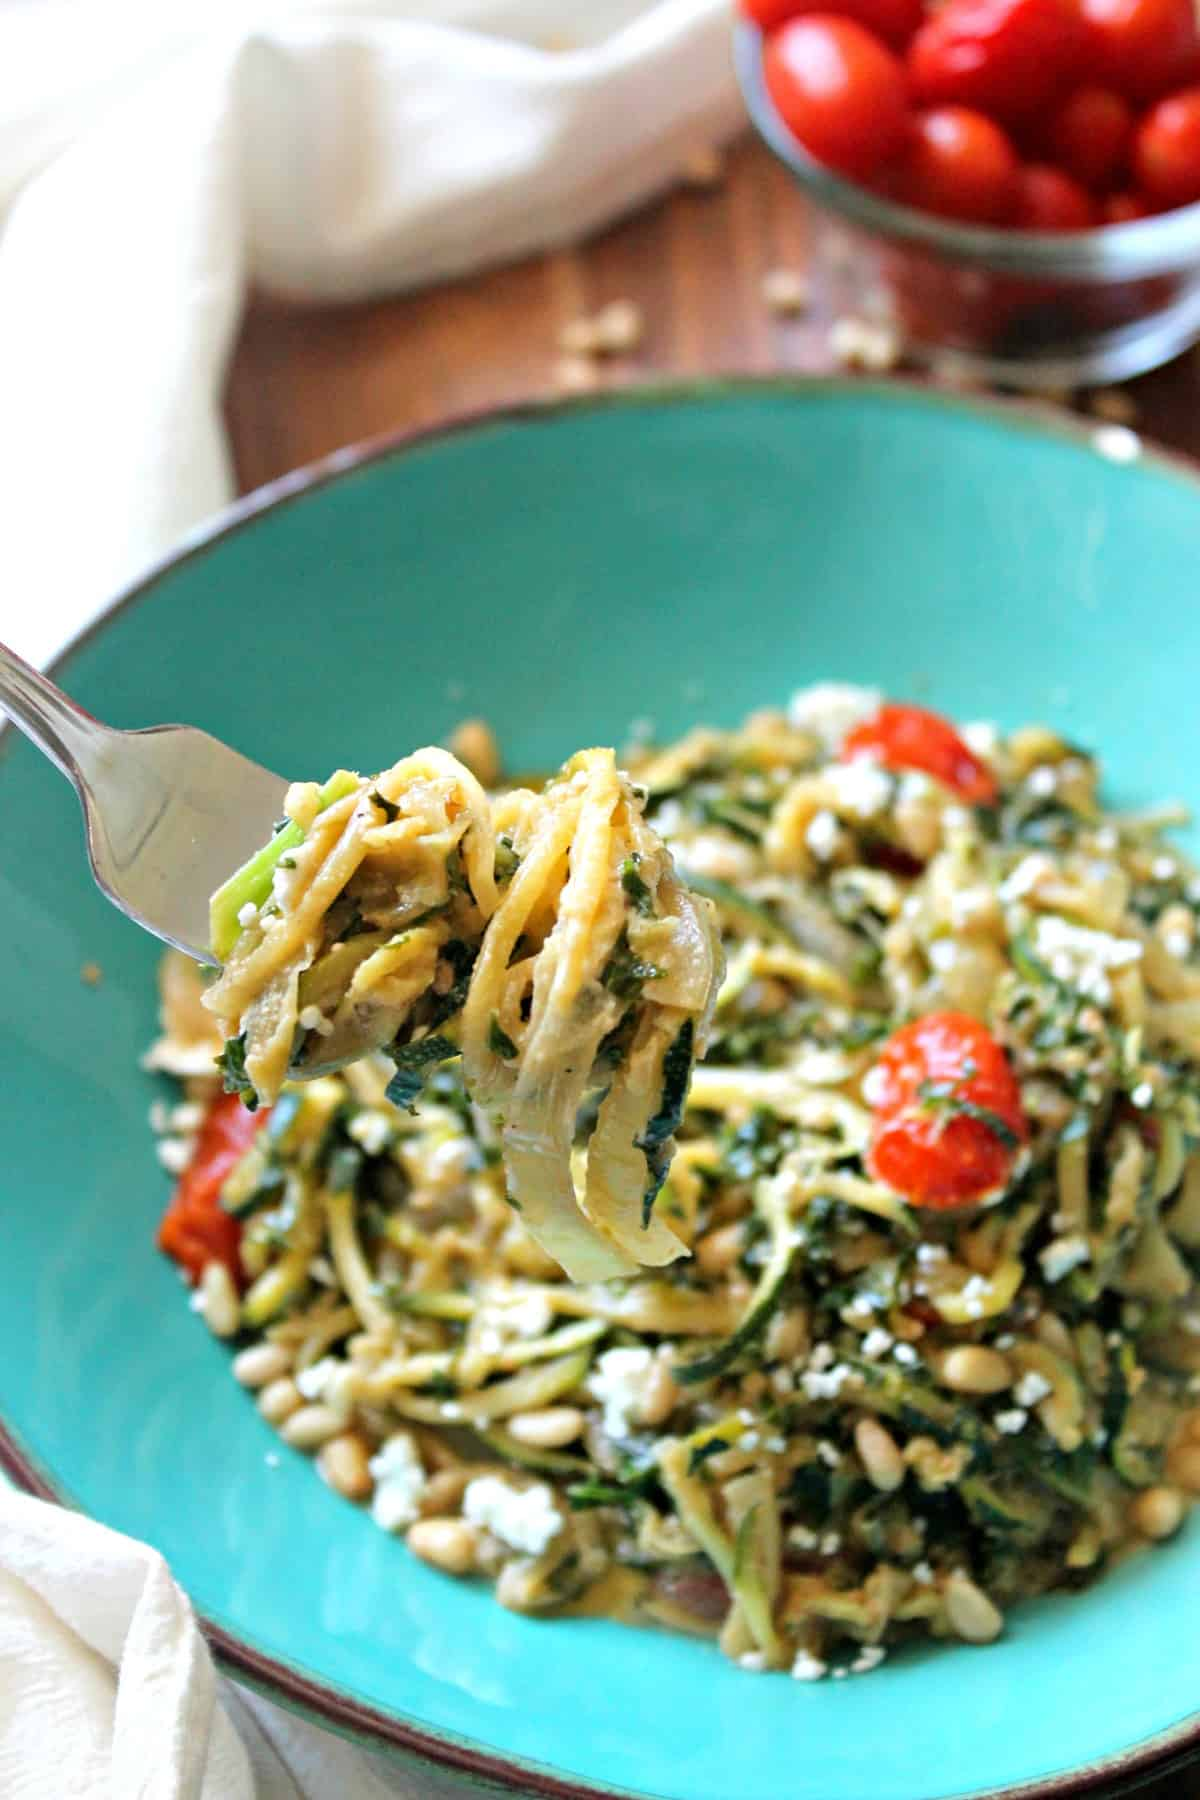 Creamy zucchini pasta with kale, onions, juicy roasted tomatoes, and creamy goat cheese